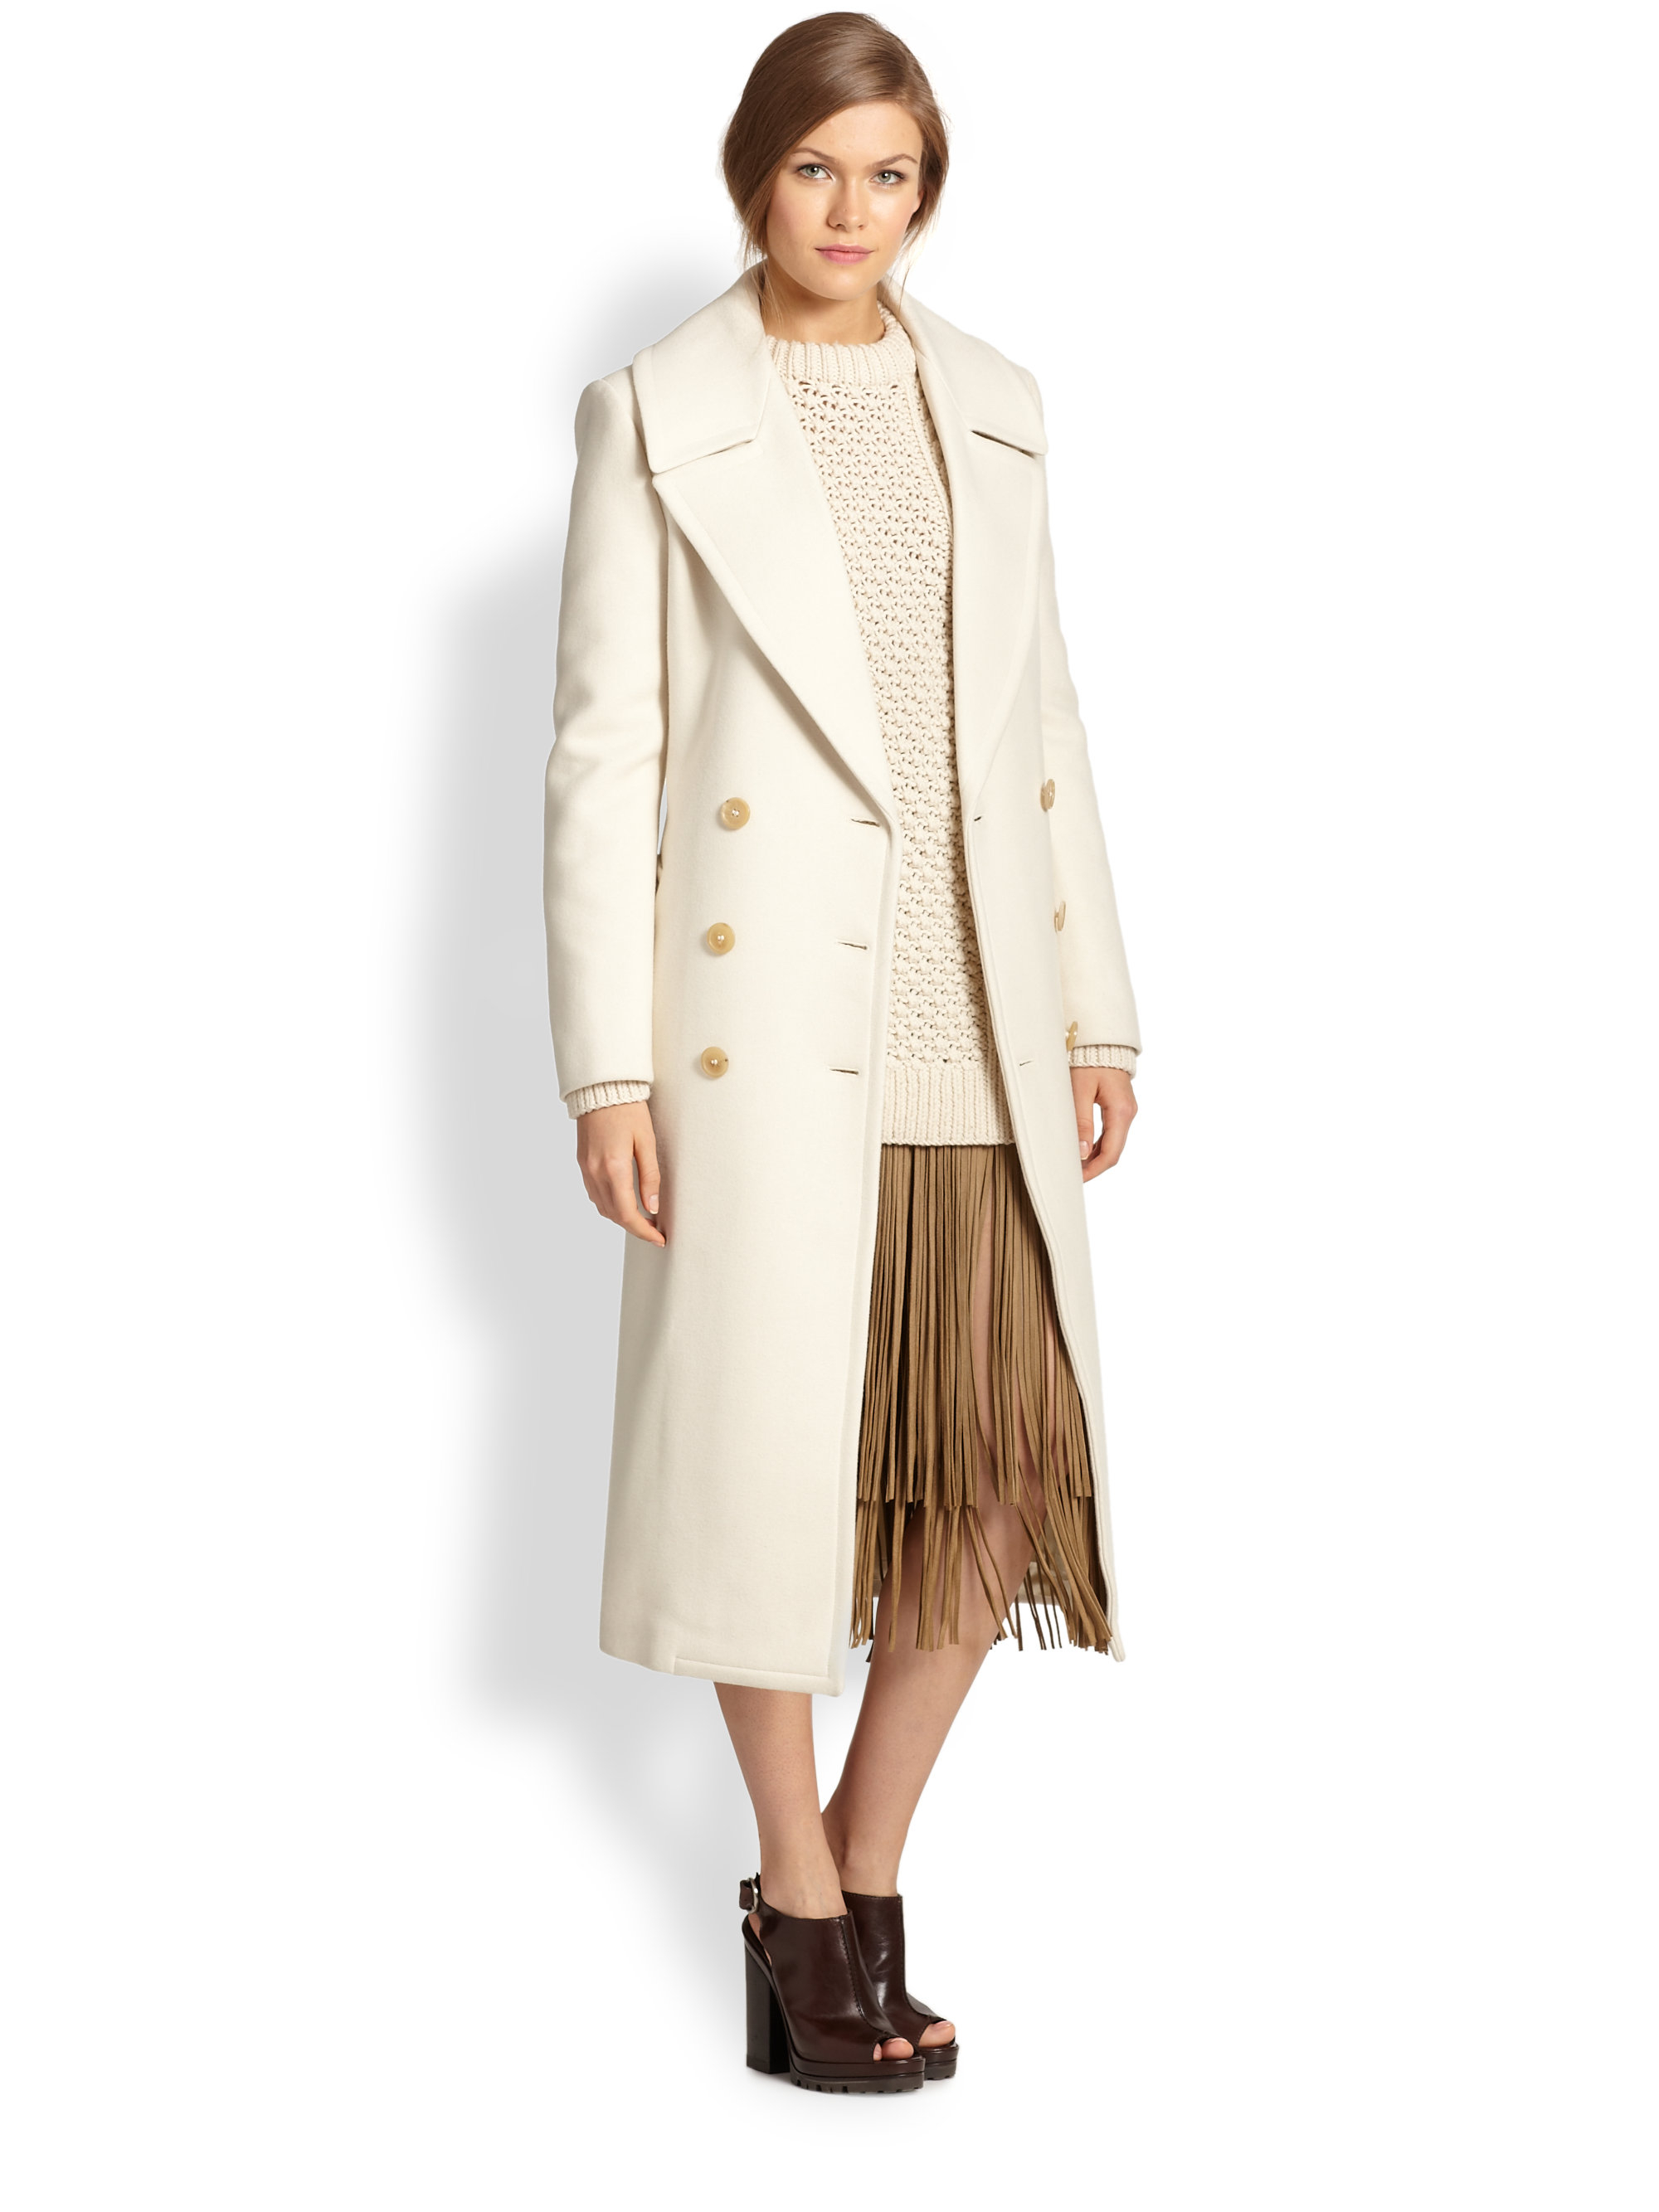 Michael kors Doublebreasted Wool Coat in White | Lyst